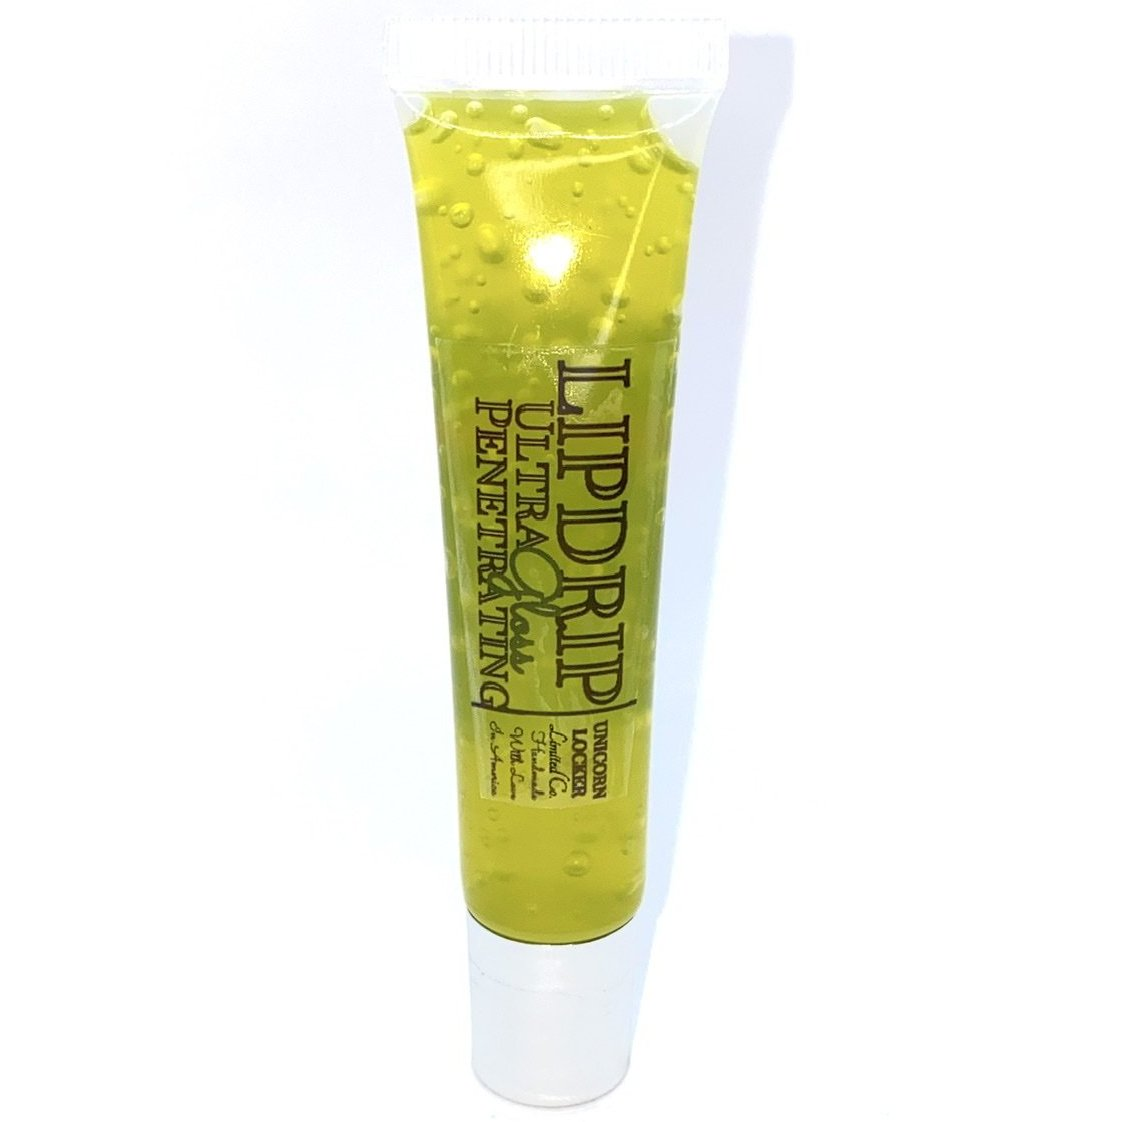 Green Apple LIPDRIP Lip Gloss - Lipgloss lipstick eyeshadow glitter blush highlighter foundation